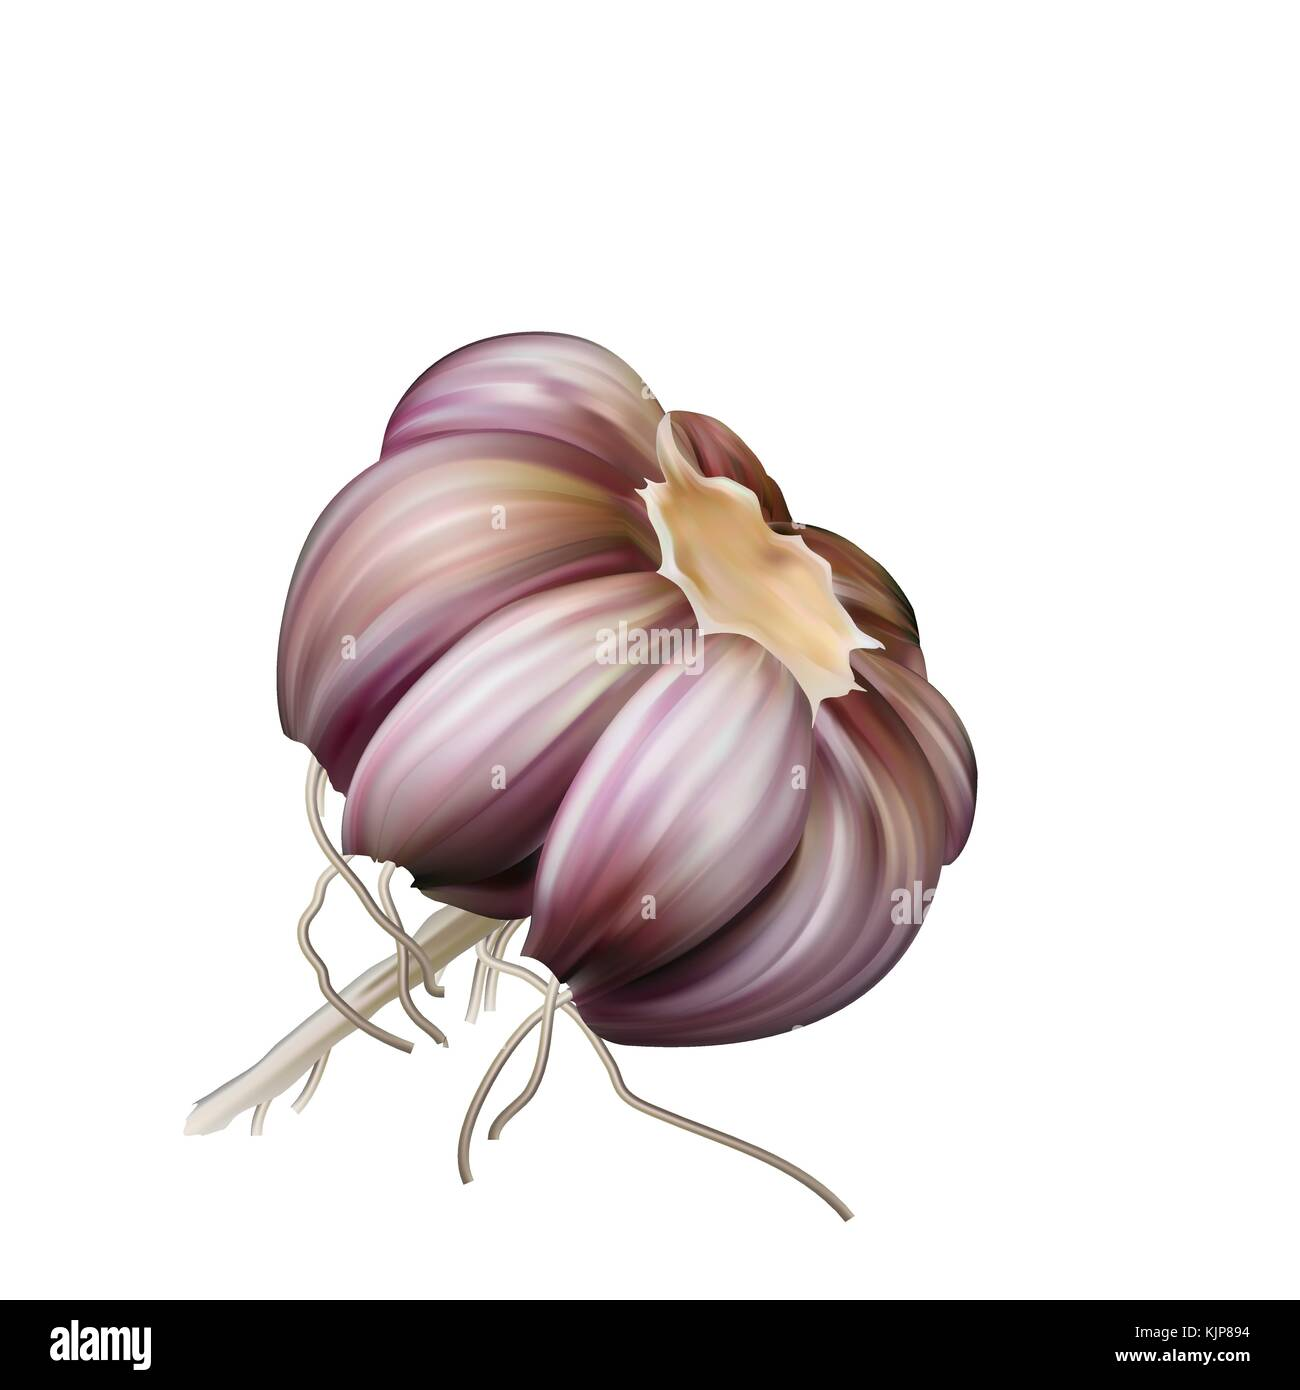 Head of garlic seasoning for spicy dishes and sauces. Garlic on white. - Stock Vector